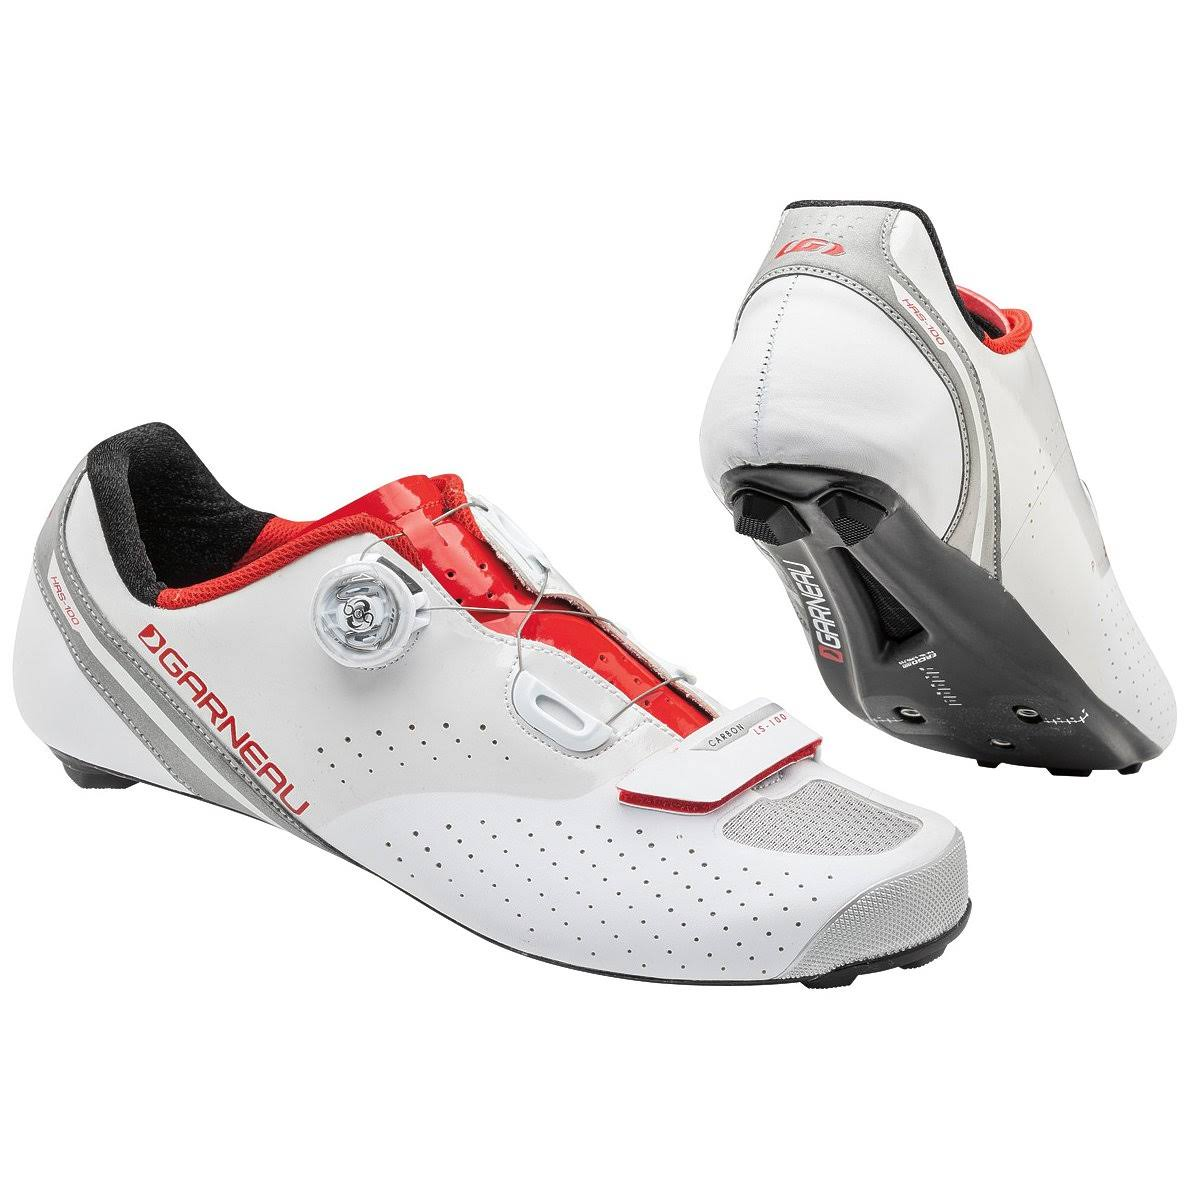 Louis Garneau Men's Carbon LS 100 II Cycling Shoes - White/Ginger, 43.5 EU